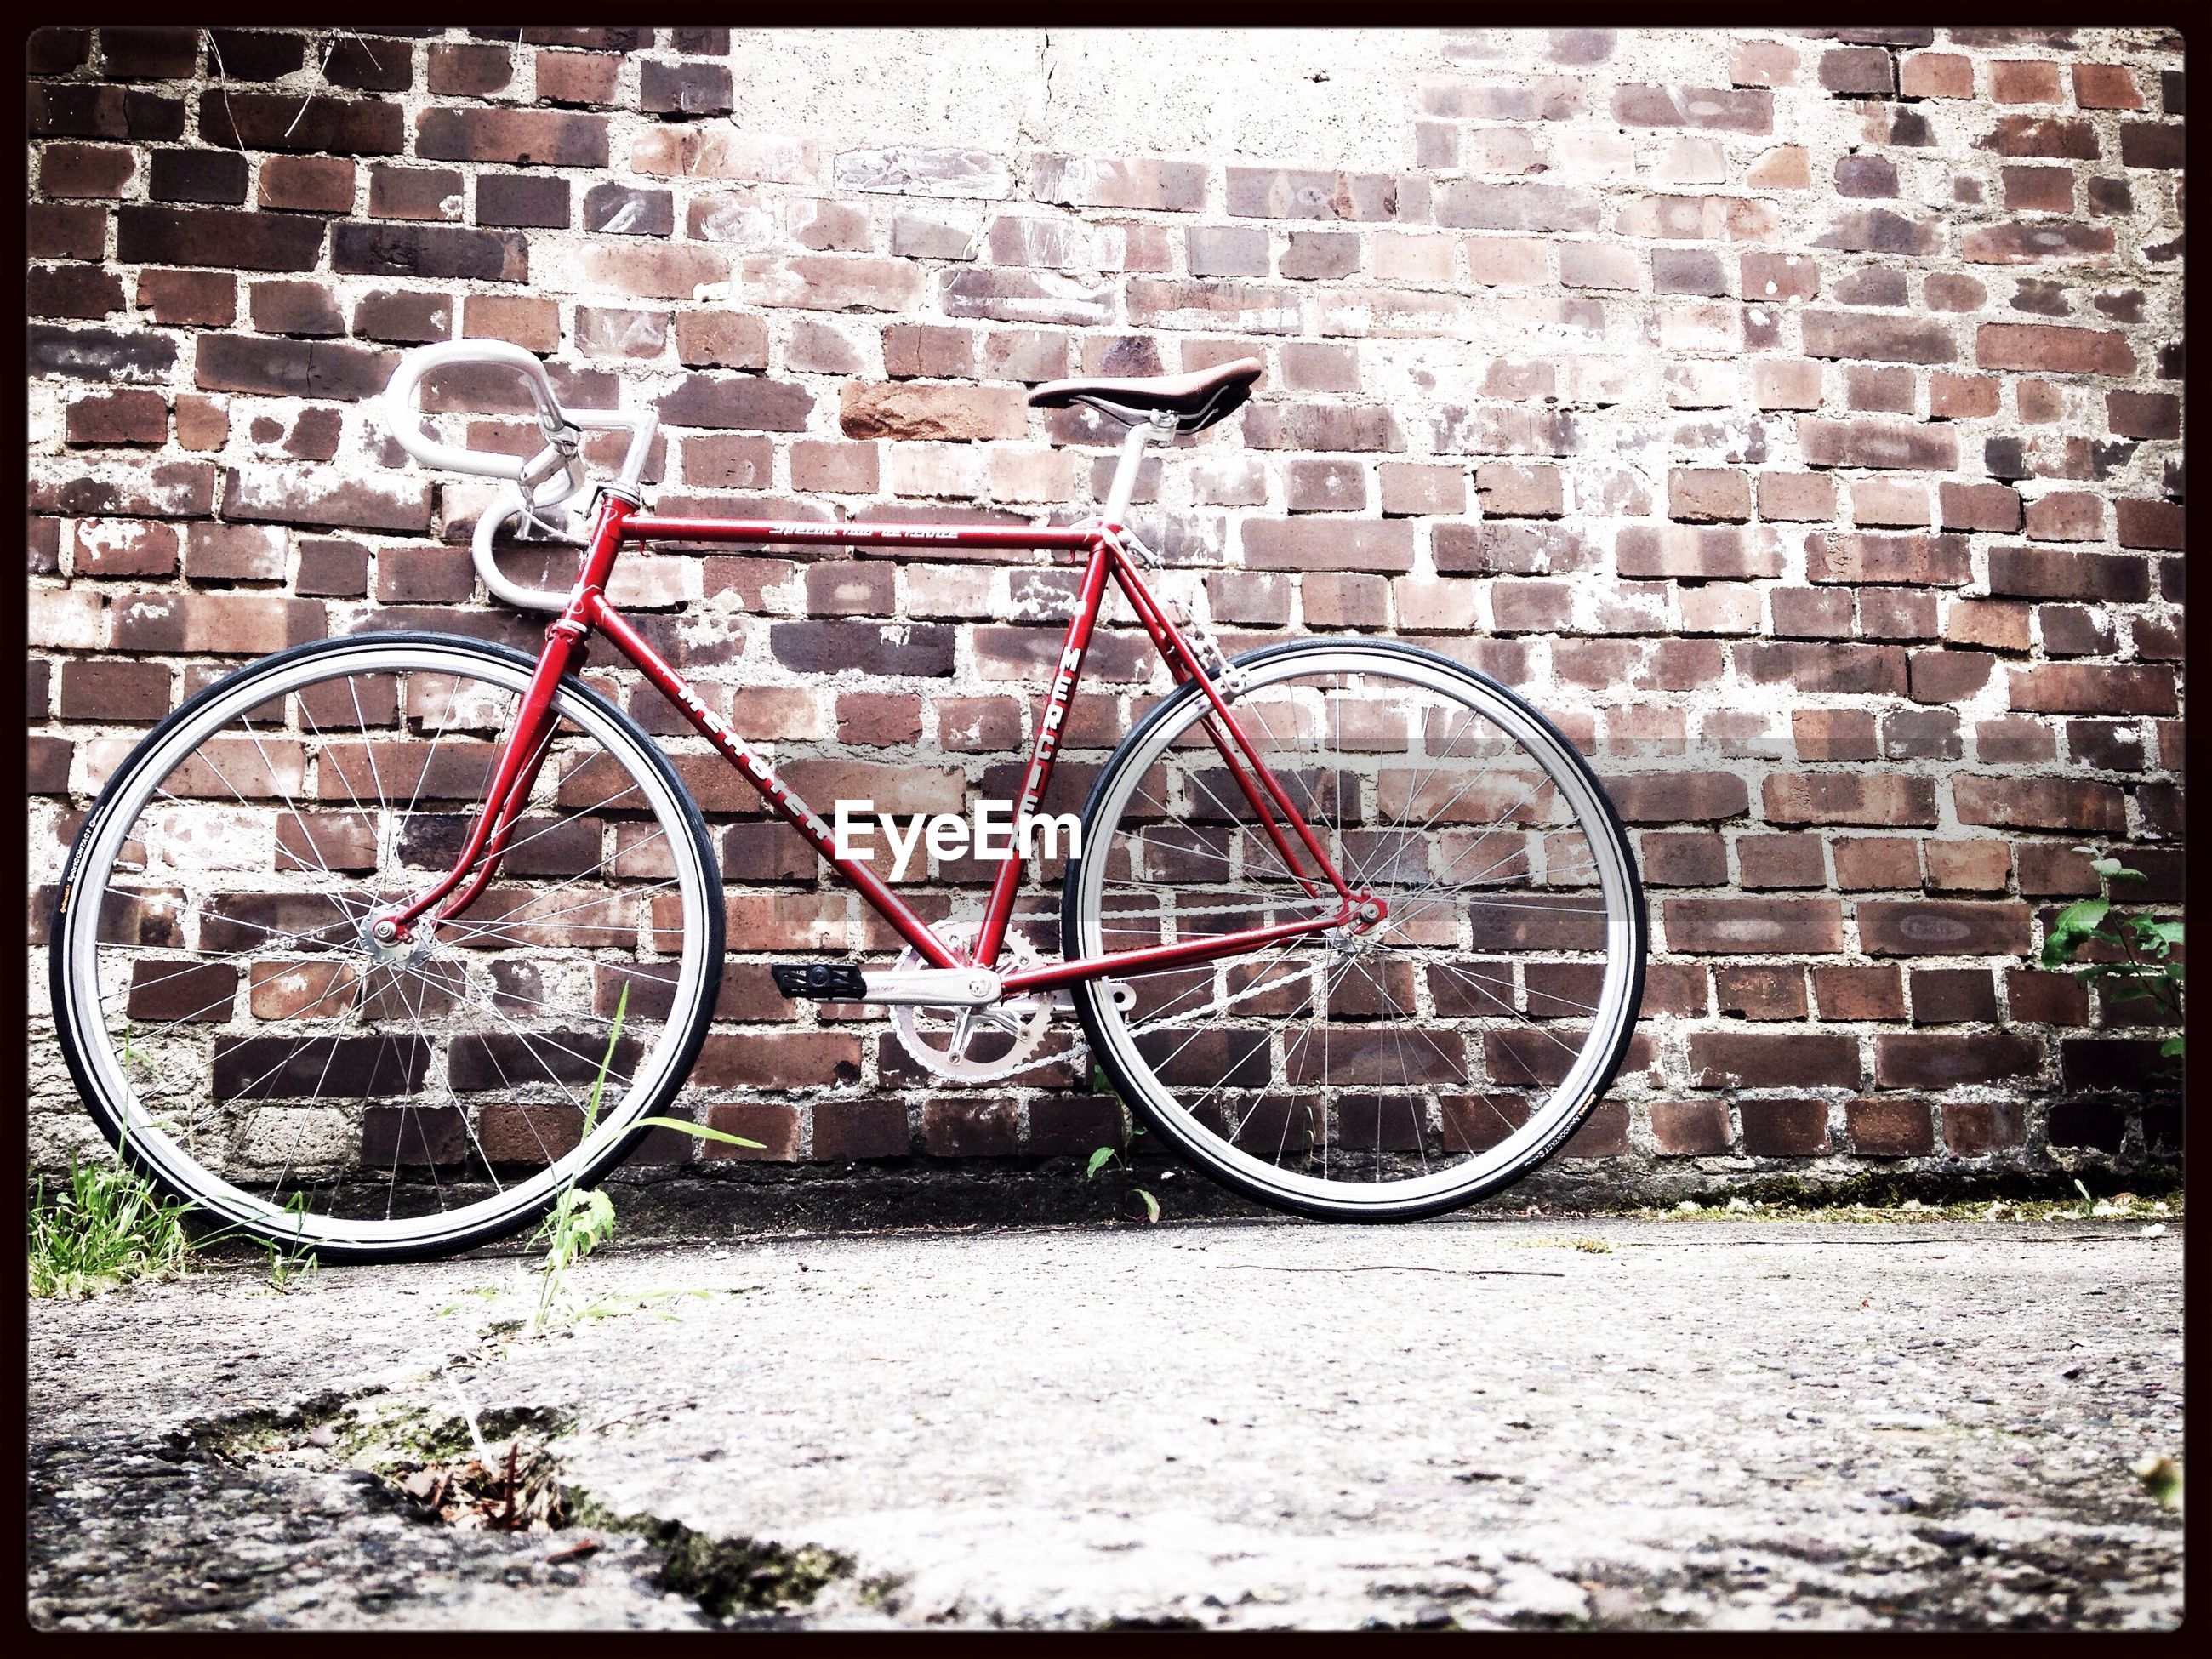 bicycle, wall - building feature, built structure, architecture, transportation, brick wall, building exterior, graffiti, wall, stationary, mode of transport, day, auto post production filter, transfer print, land vehicle, outdoors, parked, abandoned, stone wall, no people